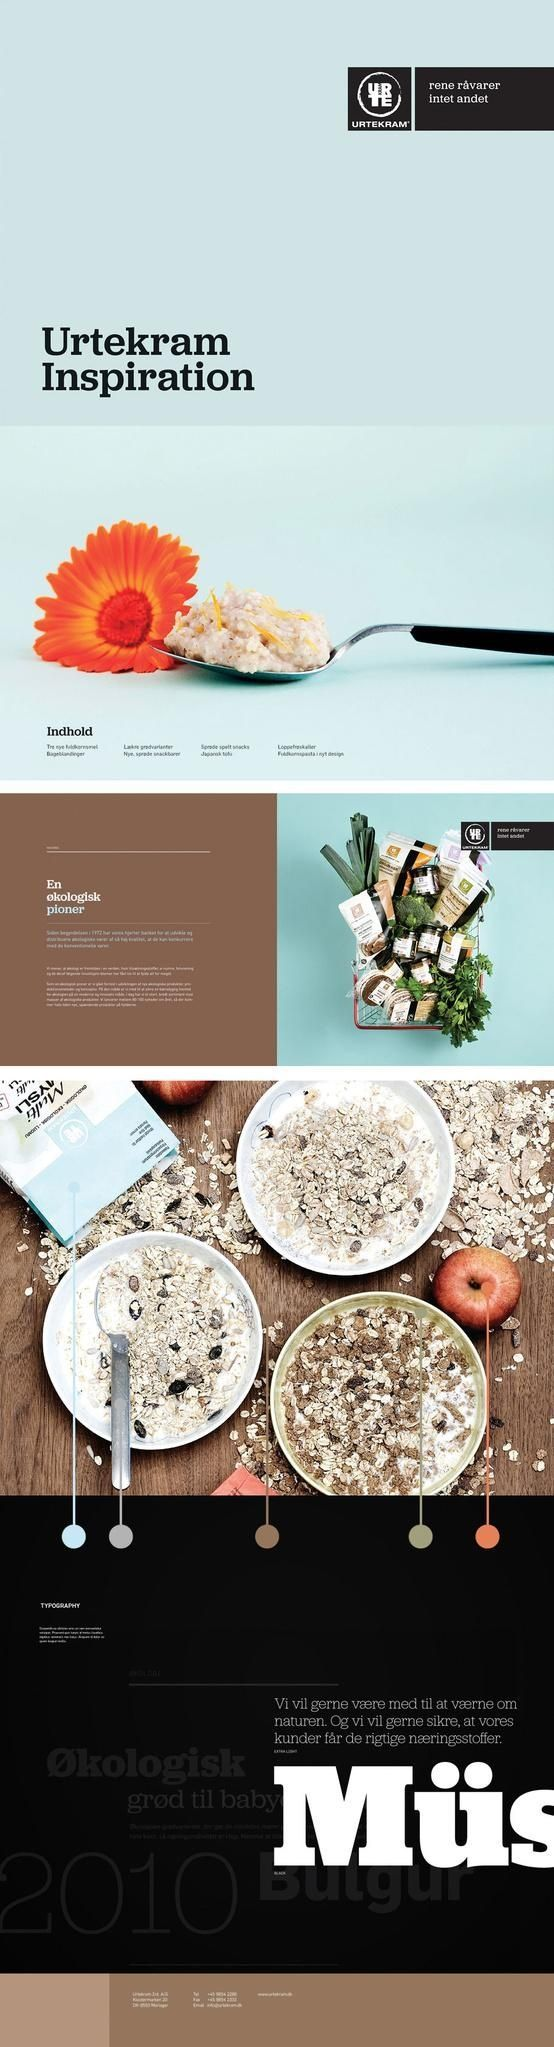 Source Travel Photo - Clean and simple webdesign web design layout 385227002821608